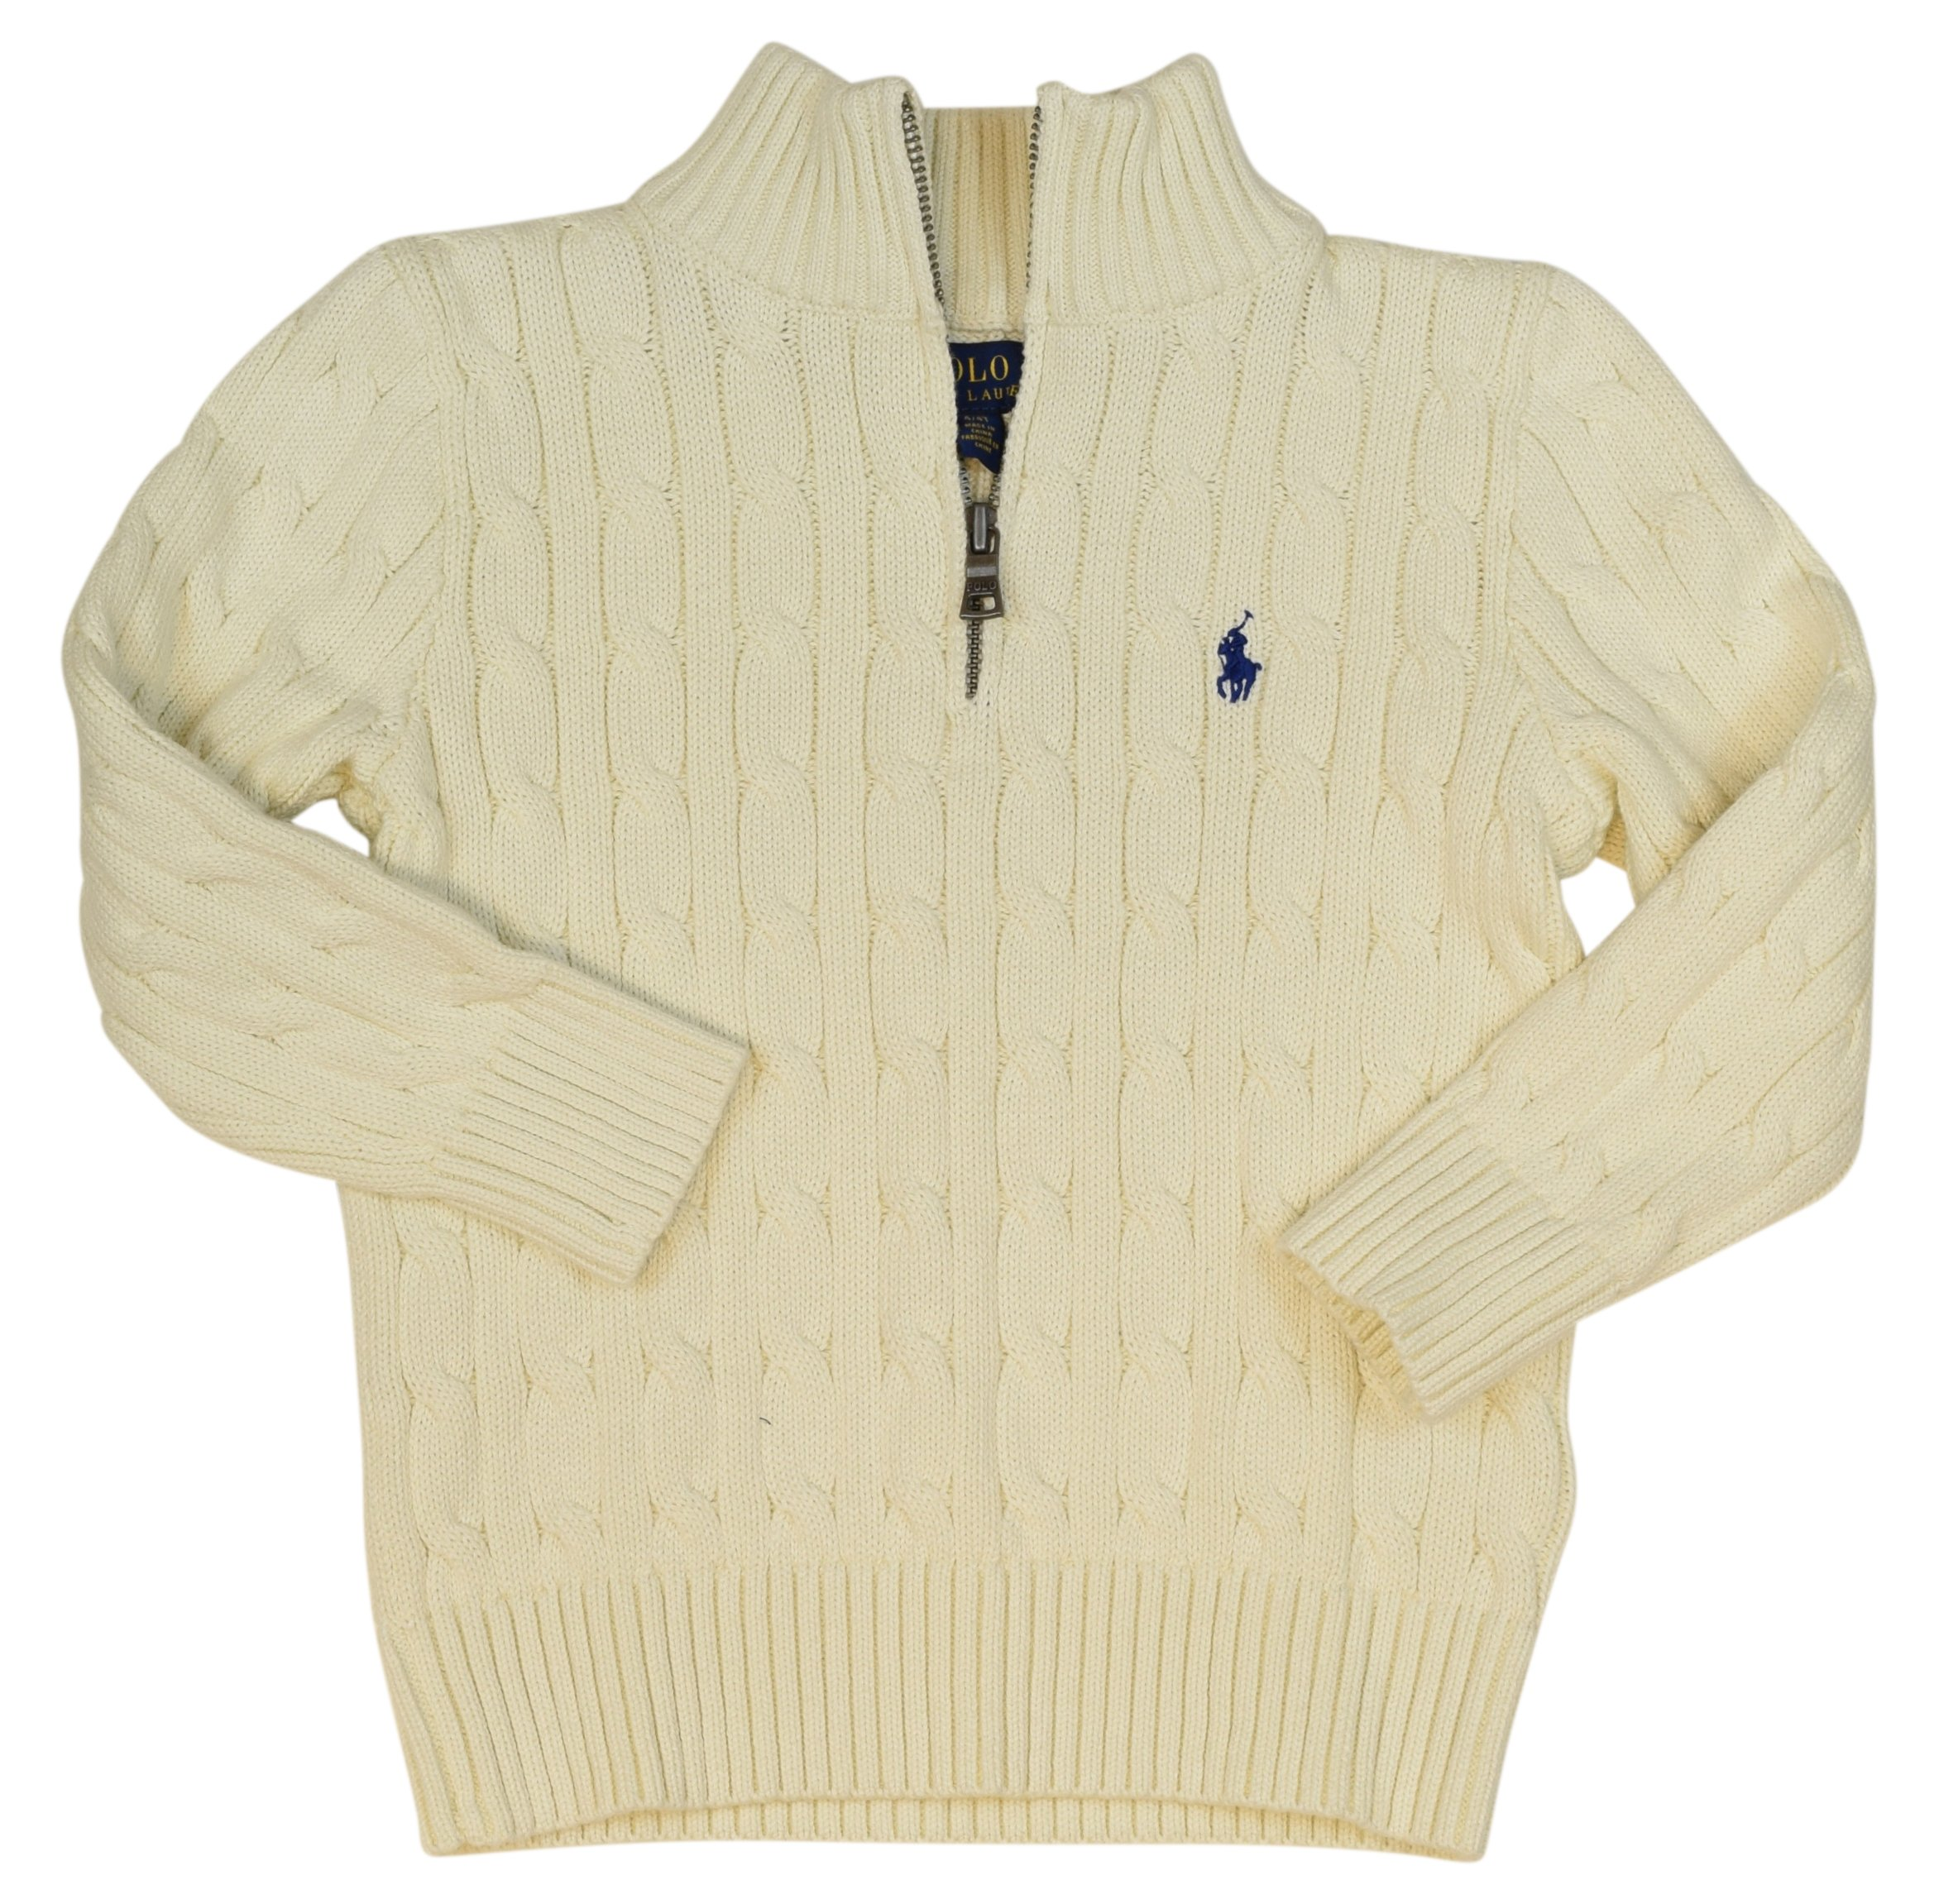 Polo Ralph Lauren Little Boys' Cable Knit 1/2 Zip Sweater - 7 - Chic Cream